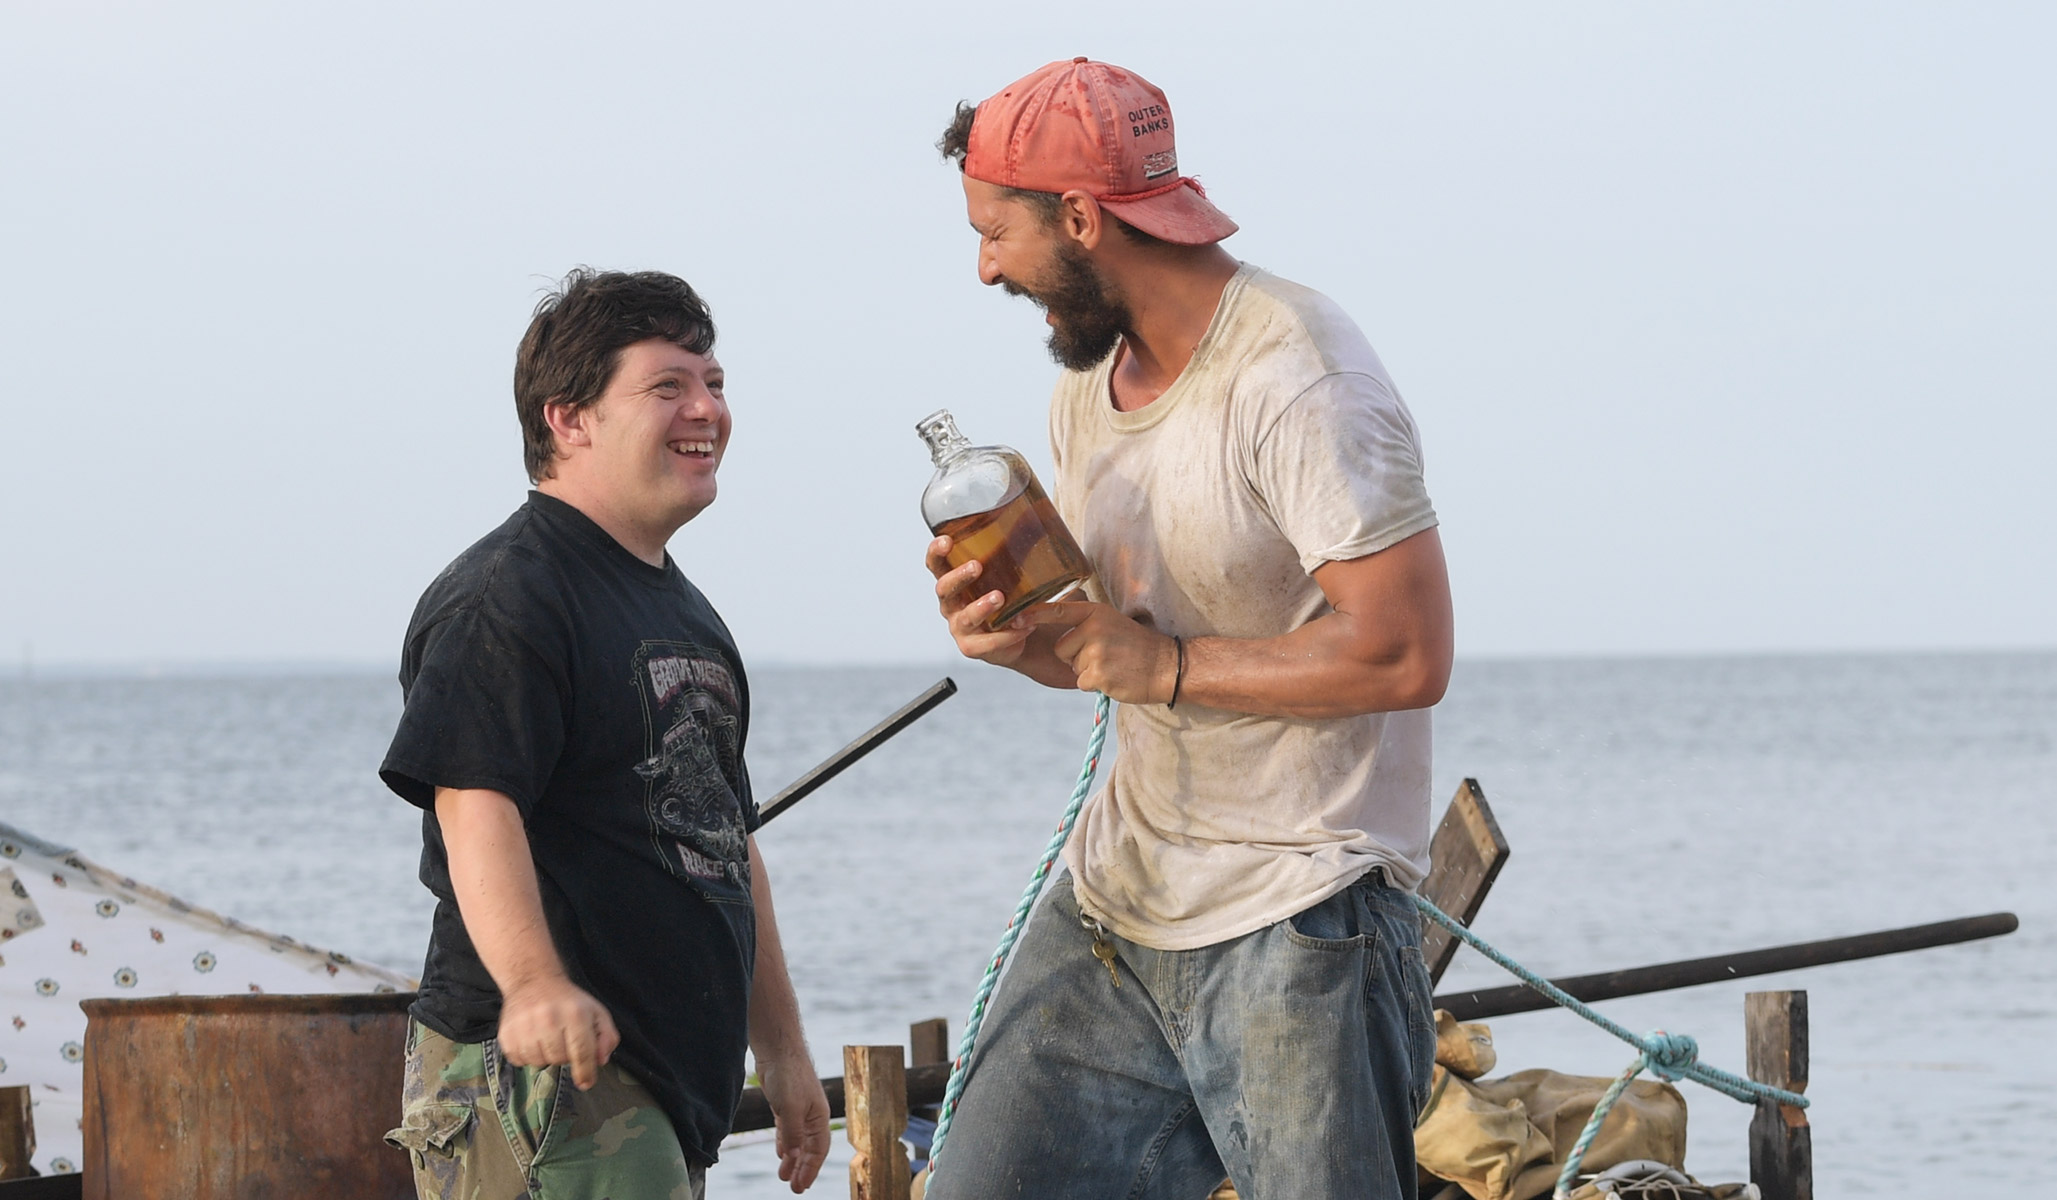 Peanut Butter Falcon: A Film with a Conservative Soul Teaches Three Great Truths of Manhood